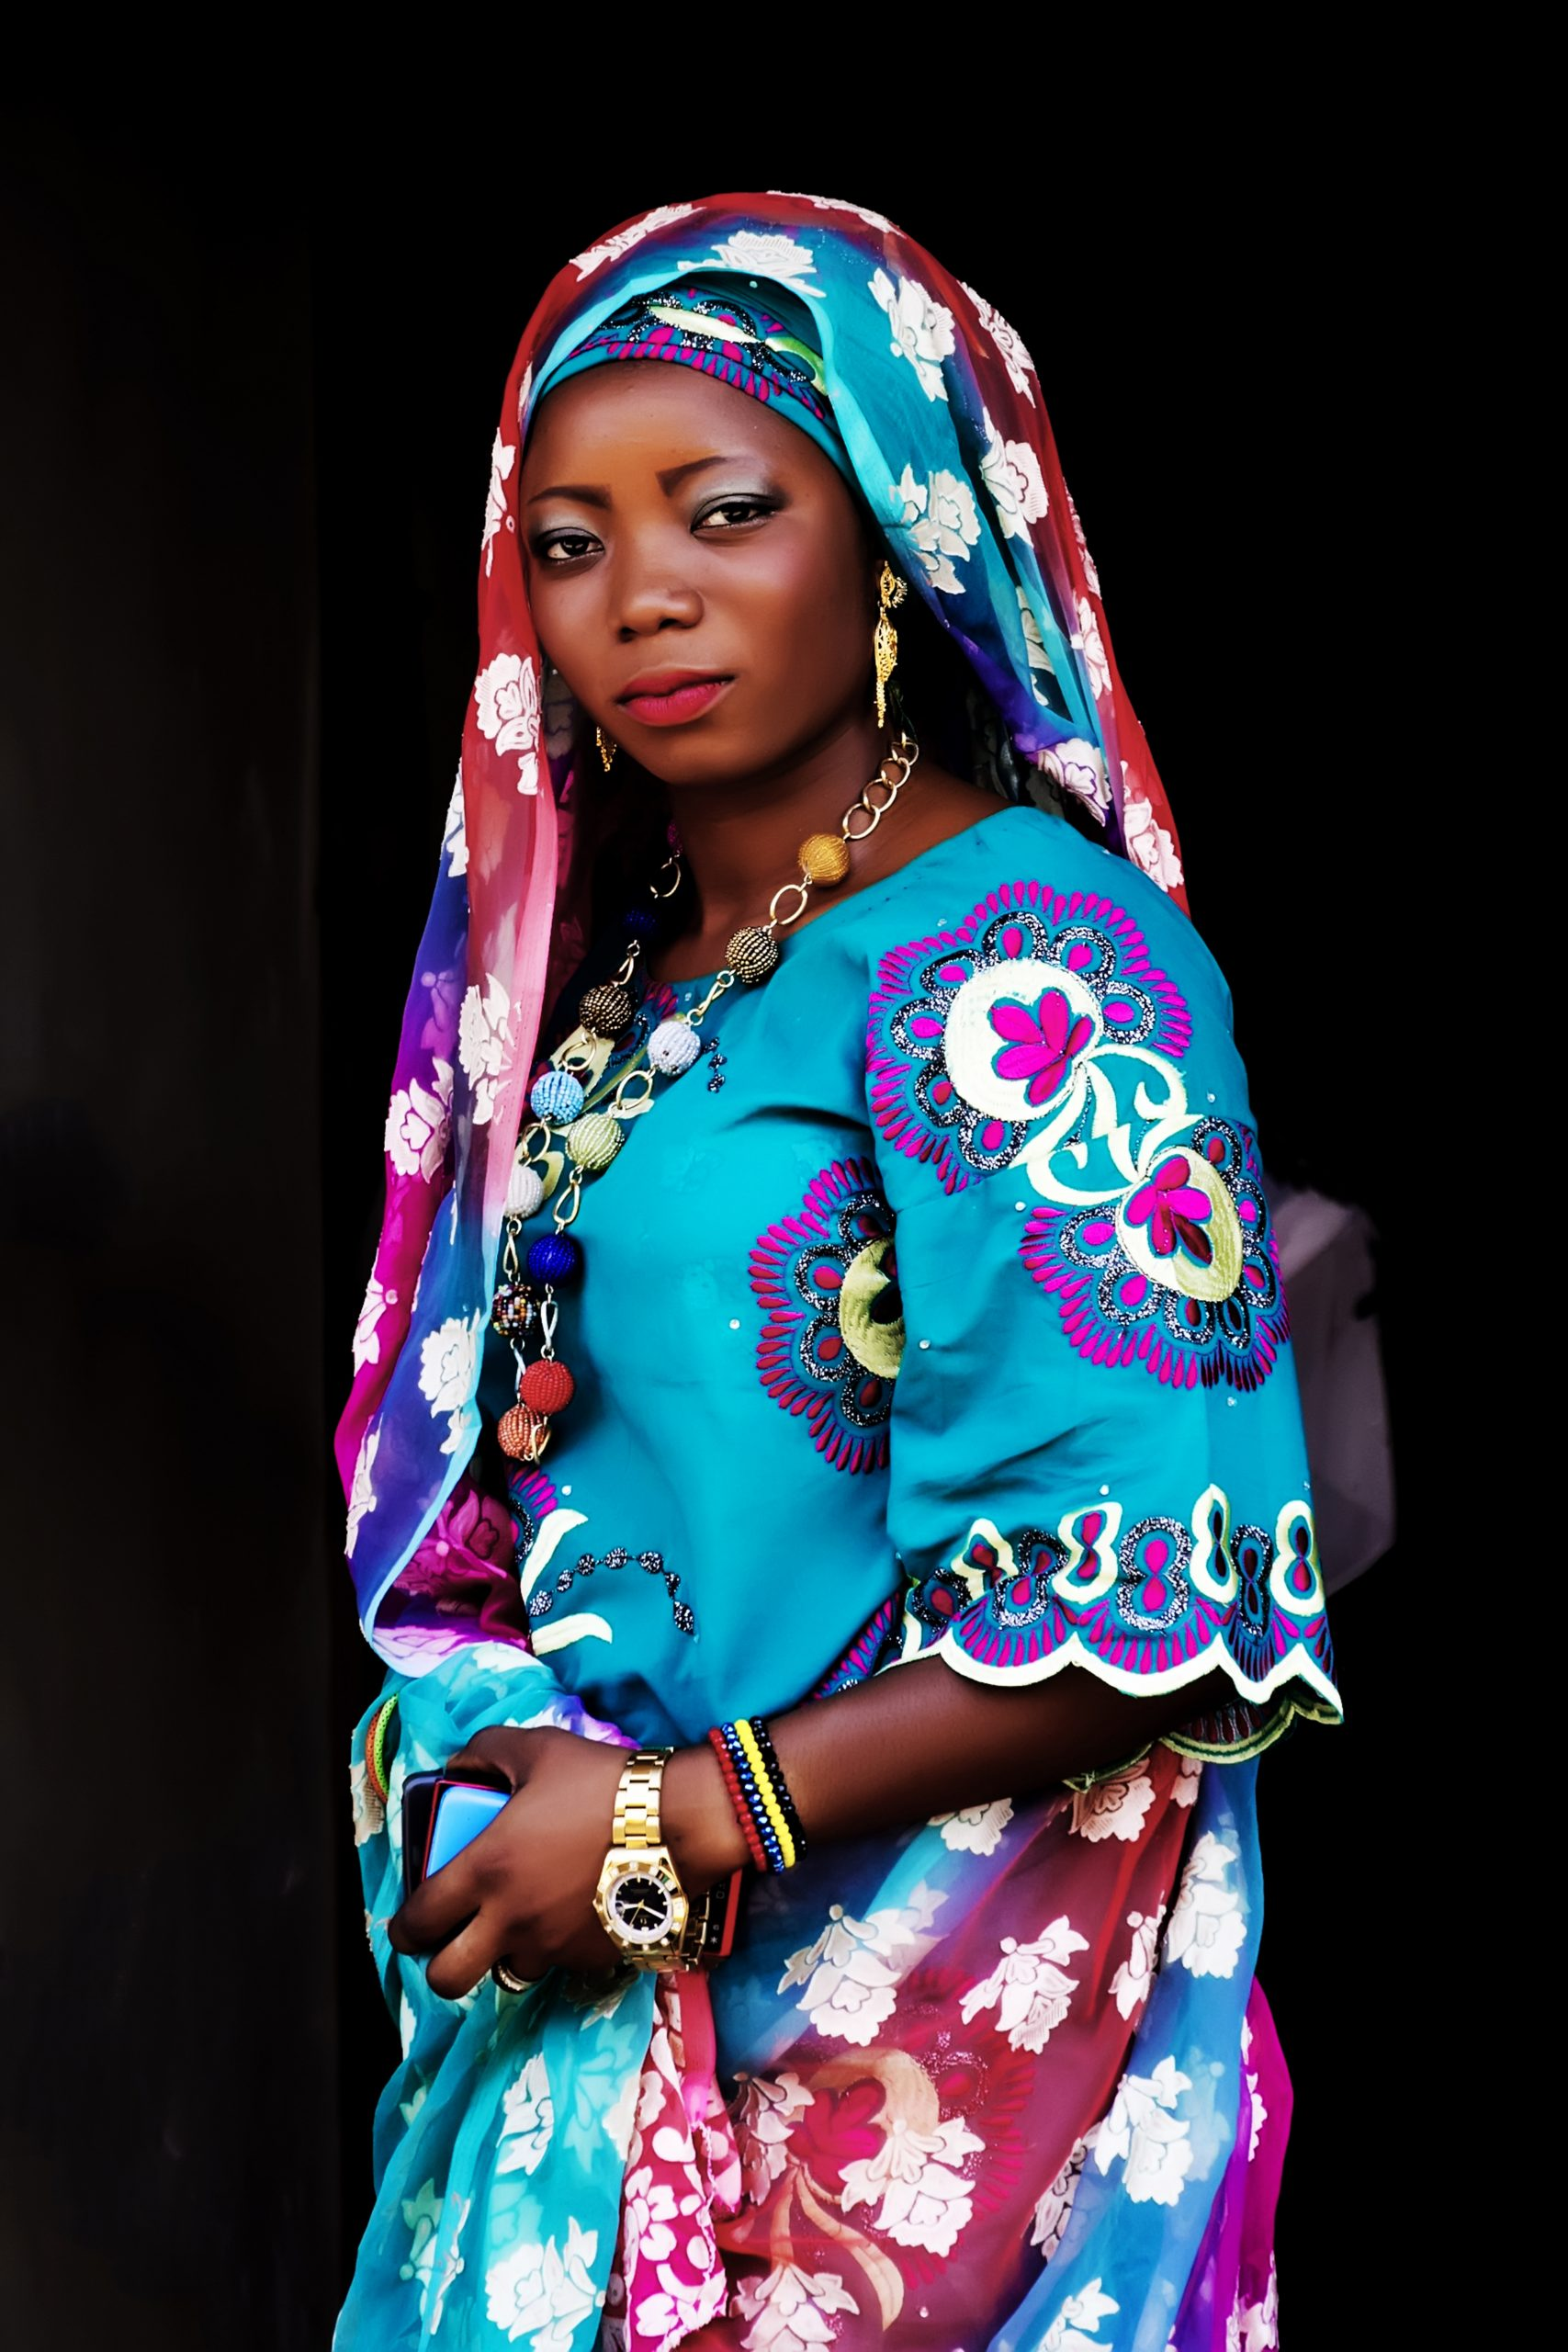 african-woman-1580545